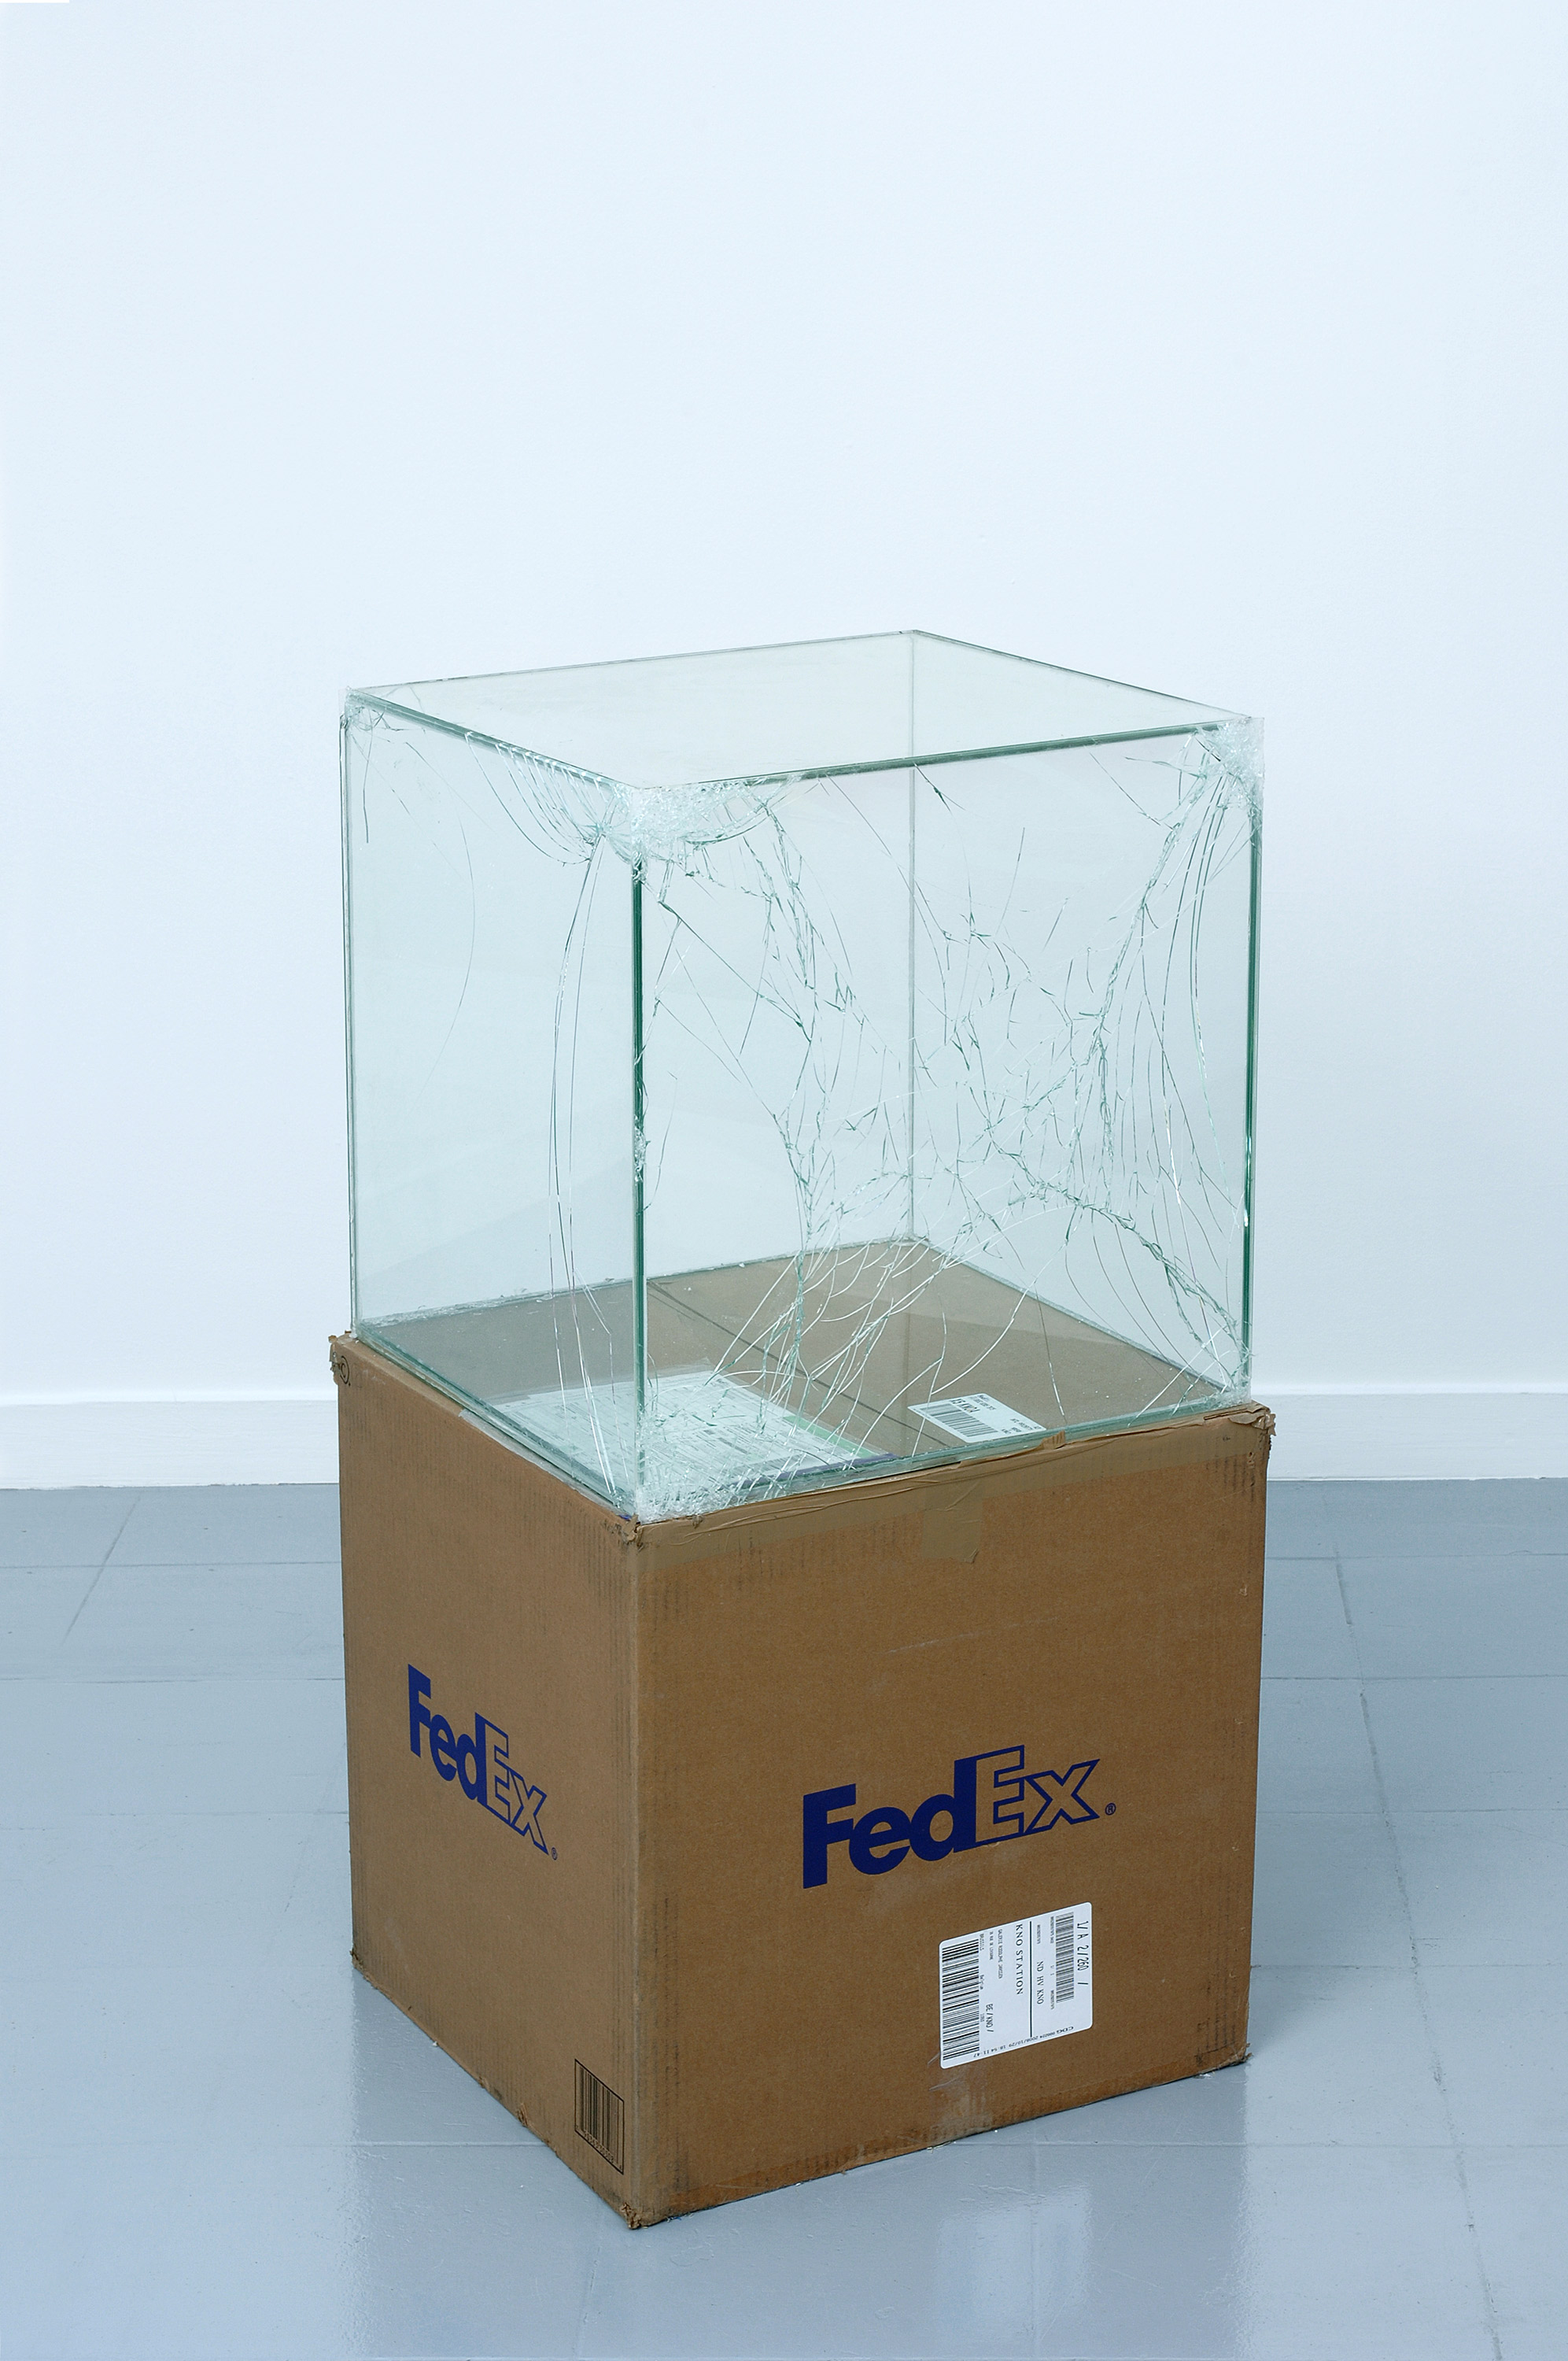 FedEx® Large Kraft Box  © 2005 FEDEX 330508 REV 10/05 SSCC, International Priority, Los Angeles–Brussels trk#865282057964, October 27–30, 2008, International Priority, Brussels–Los Angeles trk#866071746385, Janurary 8–9, 2009, Standard Overnight, Los Angeles–New York trk#872632033108, April 29–30, 2010, Standard Overnight, New York–Los Angeles trk#796210730703, September 2–3, 2010, Priority Overnight, Los Angeles–New York trk#794583197877, March 28–29, 2011, Priority Overnight, New York–Los Angeles trk#611849858596, January 13–14, 2015    2008–   Laminated glass, FedEx shipping box, accrued FedEx shipping and tracking labels, silicone, metal, and tape  20 x 20 x 20 inches   FedEx Glass Works, 2007–